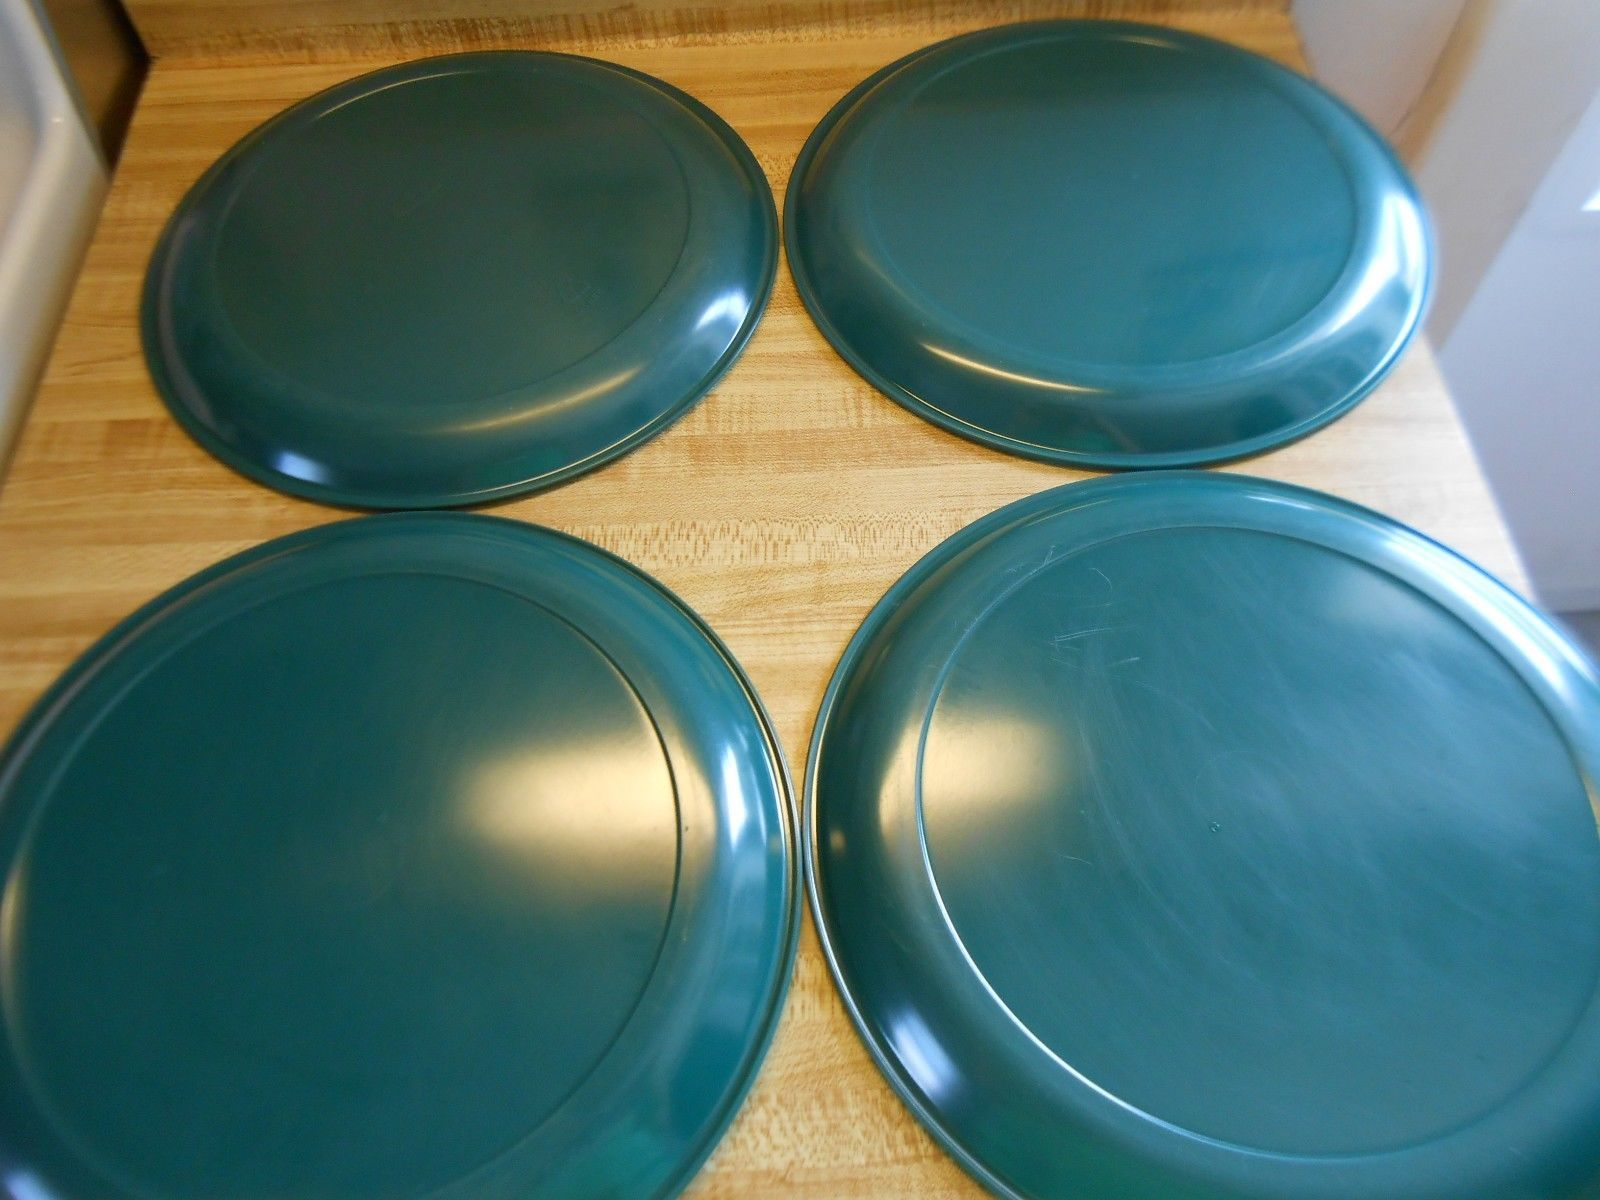 ... rubbermaid 3840 hunter green dinner plate and 4 no name ... & rubbermaid 3840 hunter green dinner plate and 45 similar items